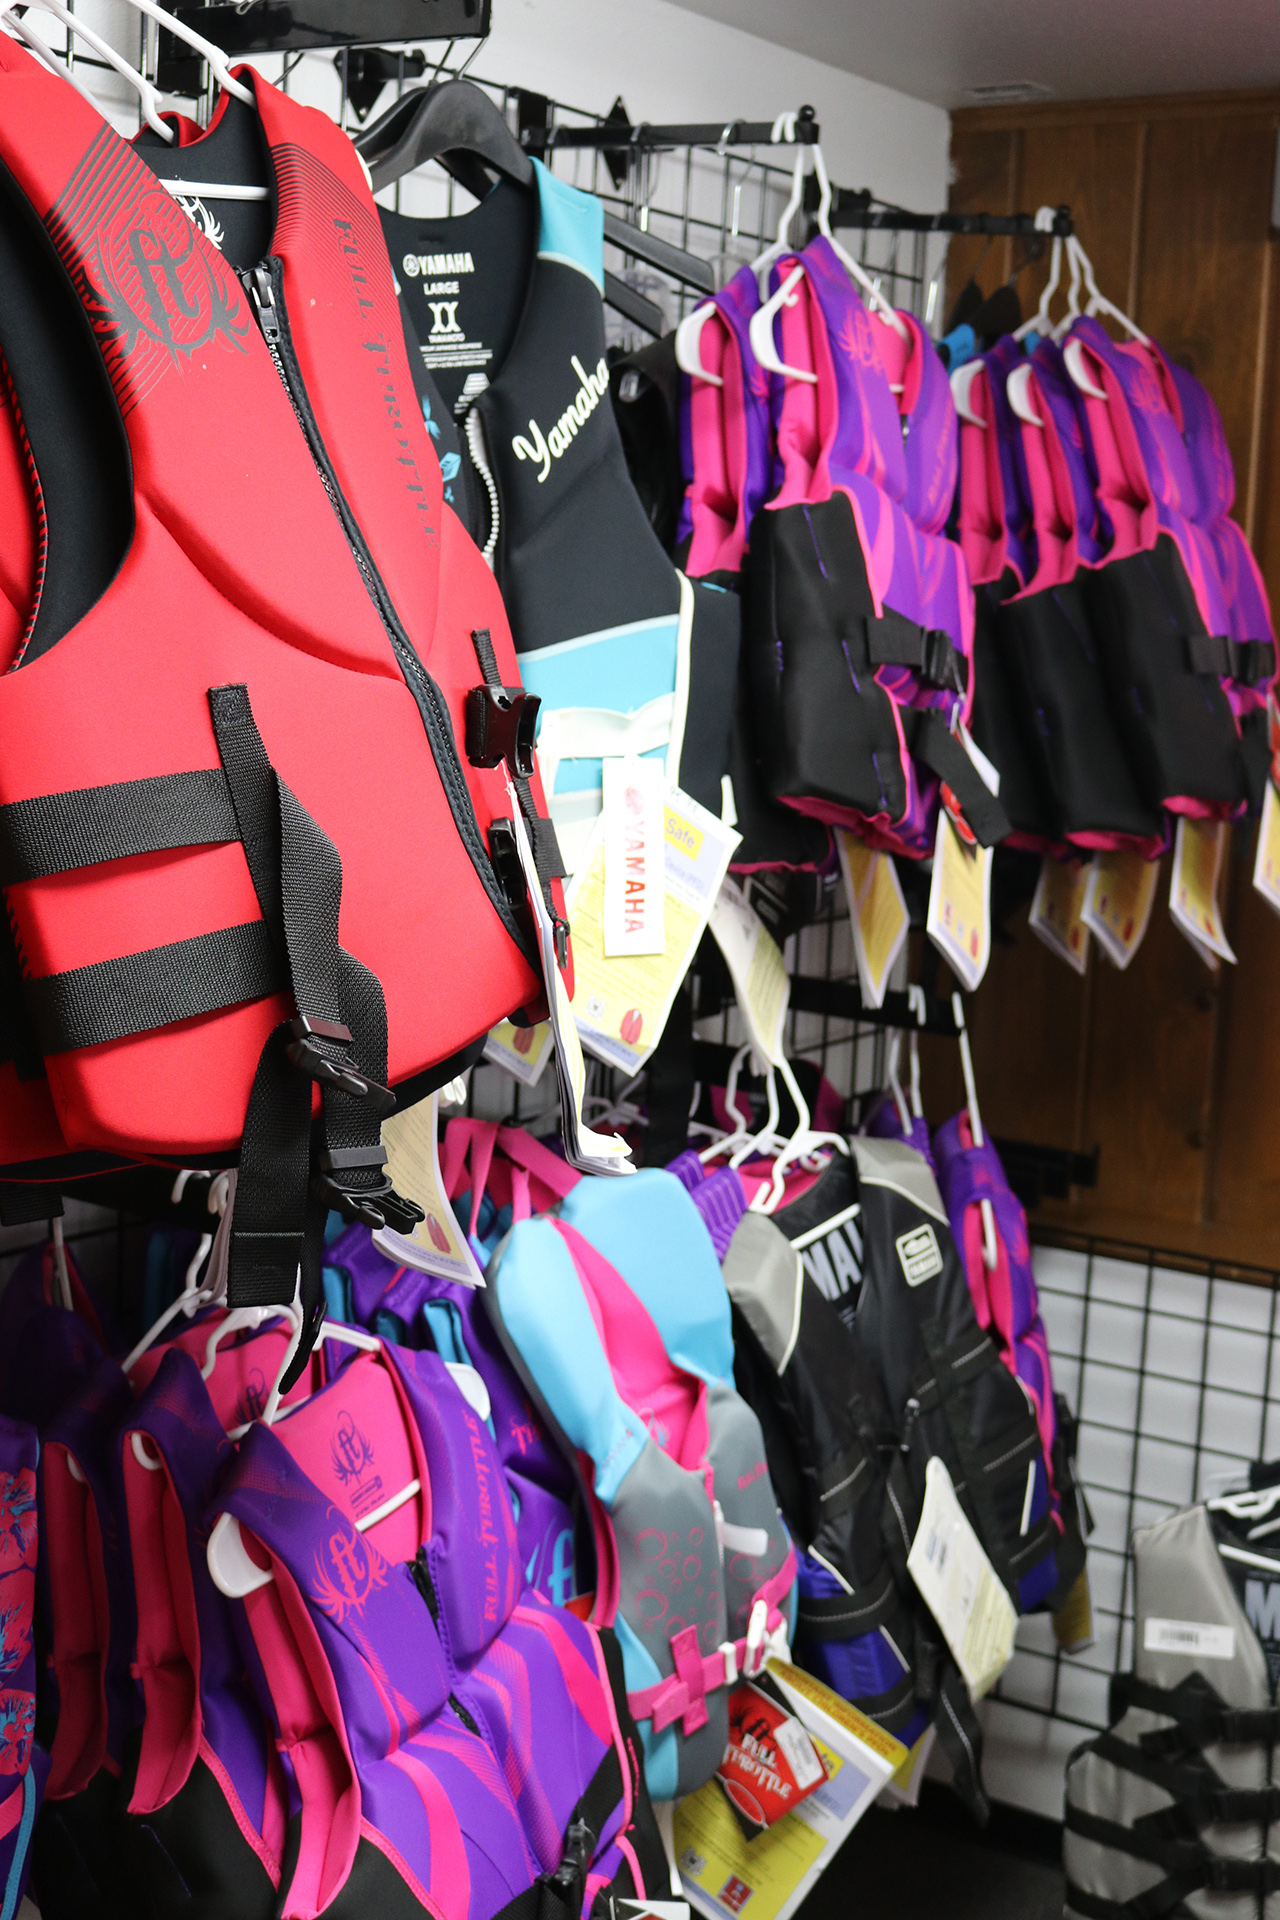 Holiday Shores WaterSports Store Life Jackets